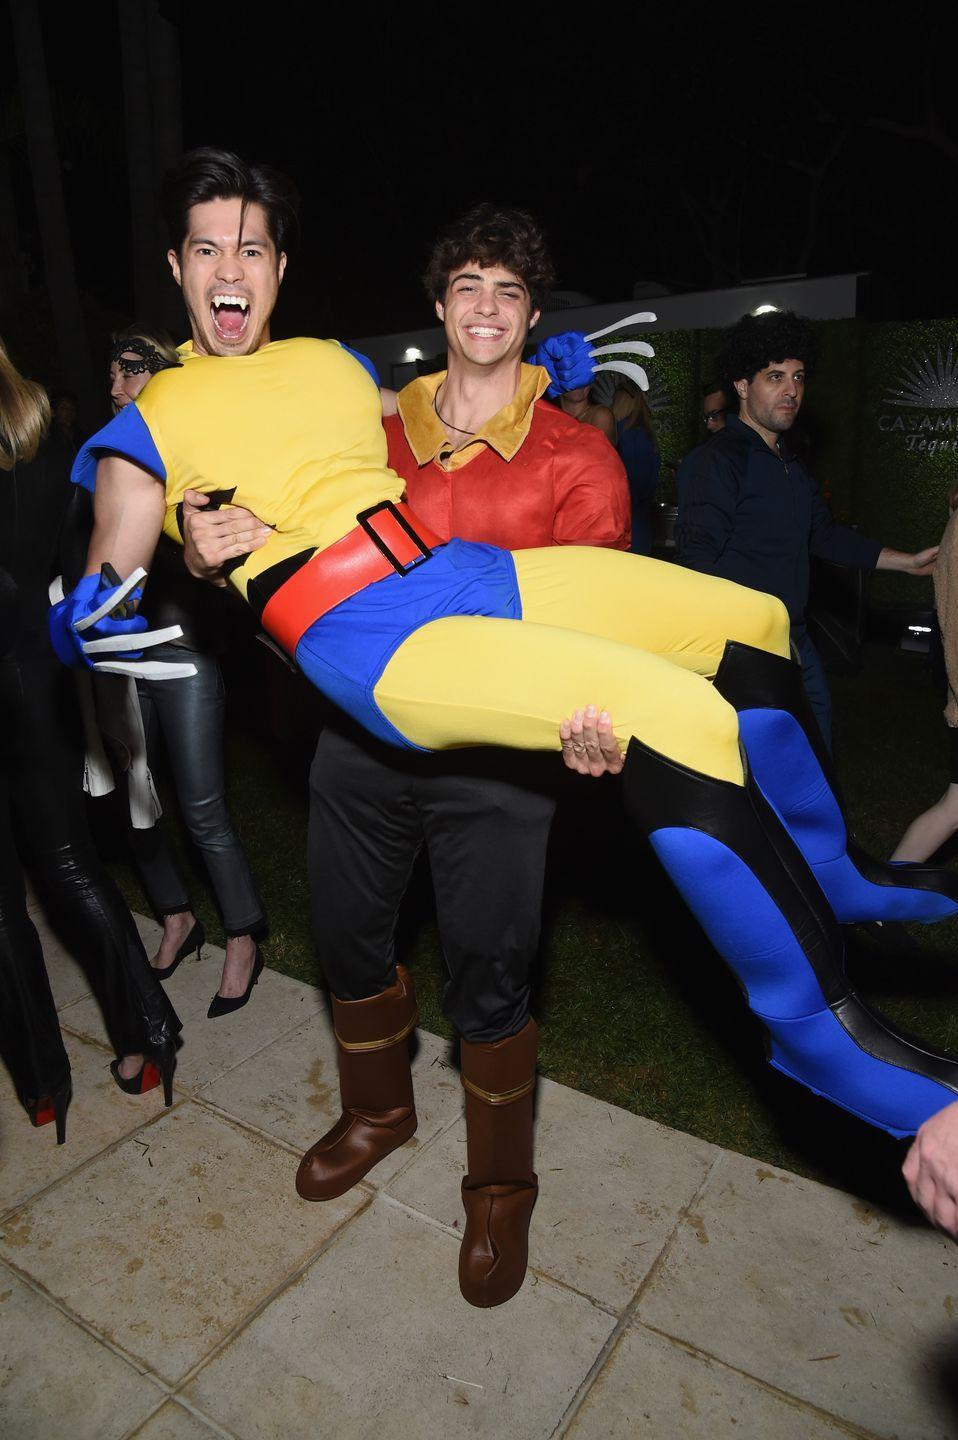 <p>Ross Butler and Noah Centineo made a strange dynamic duo as Wolverine and Gaston. But hey, we're not complaining. Two of our celeb crushes in one pic is the only treat we need this Halloween!</p>